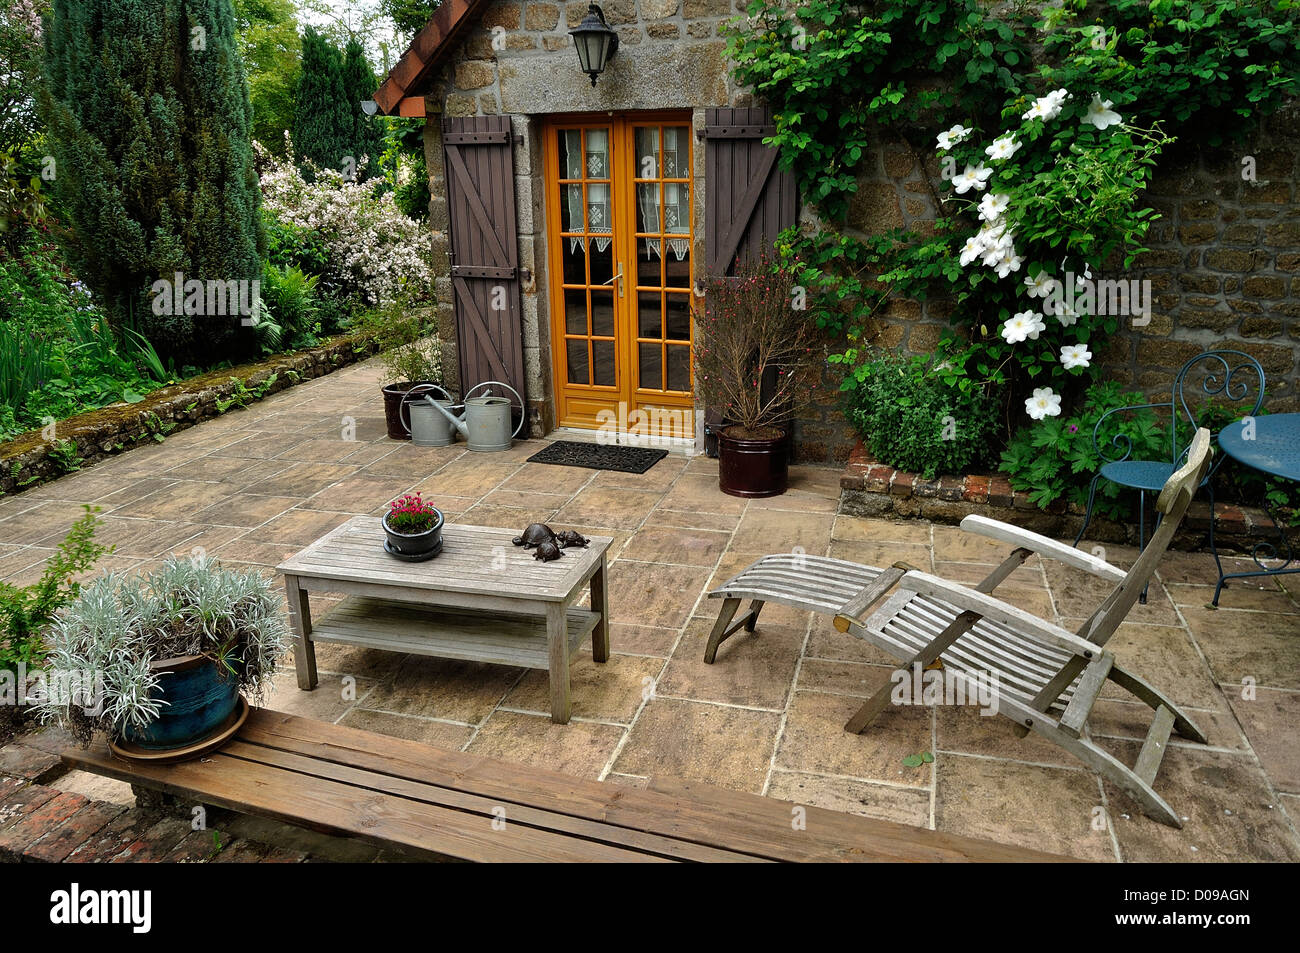 A terrace garden, furniture out of wooden, a clematis on the wall of ...